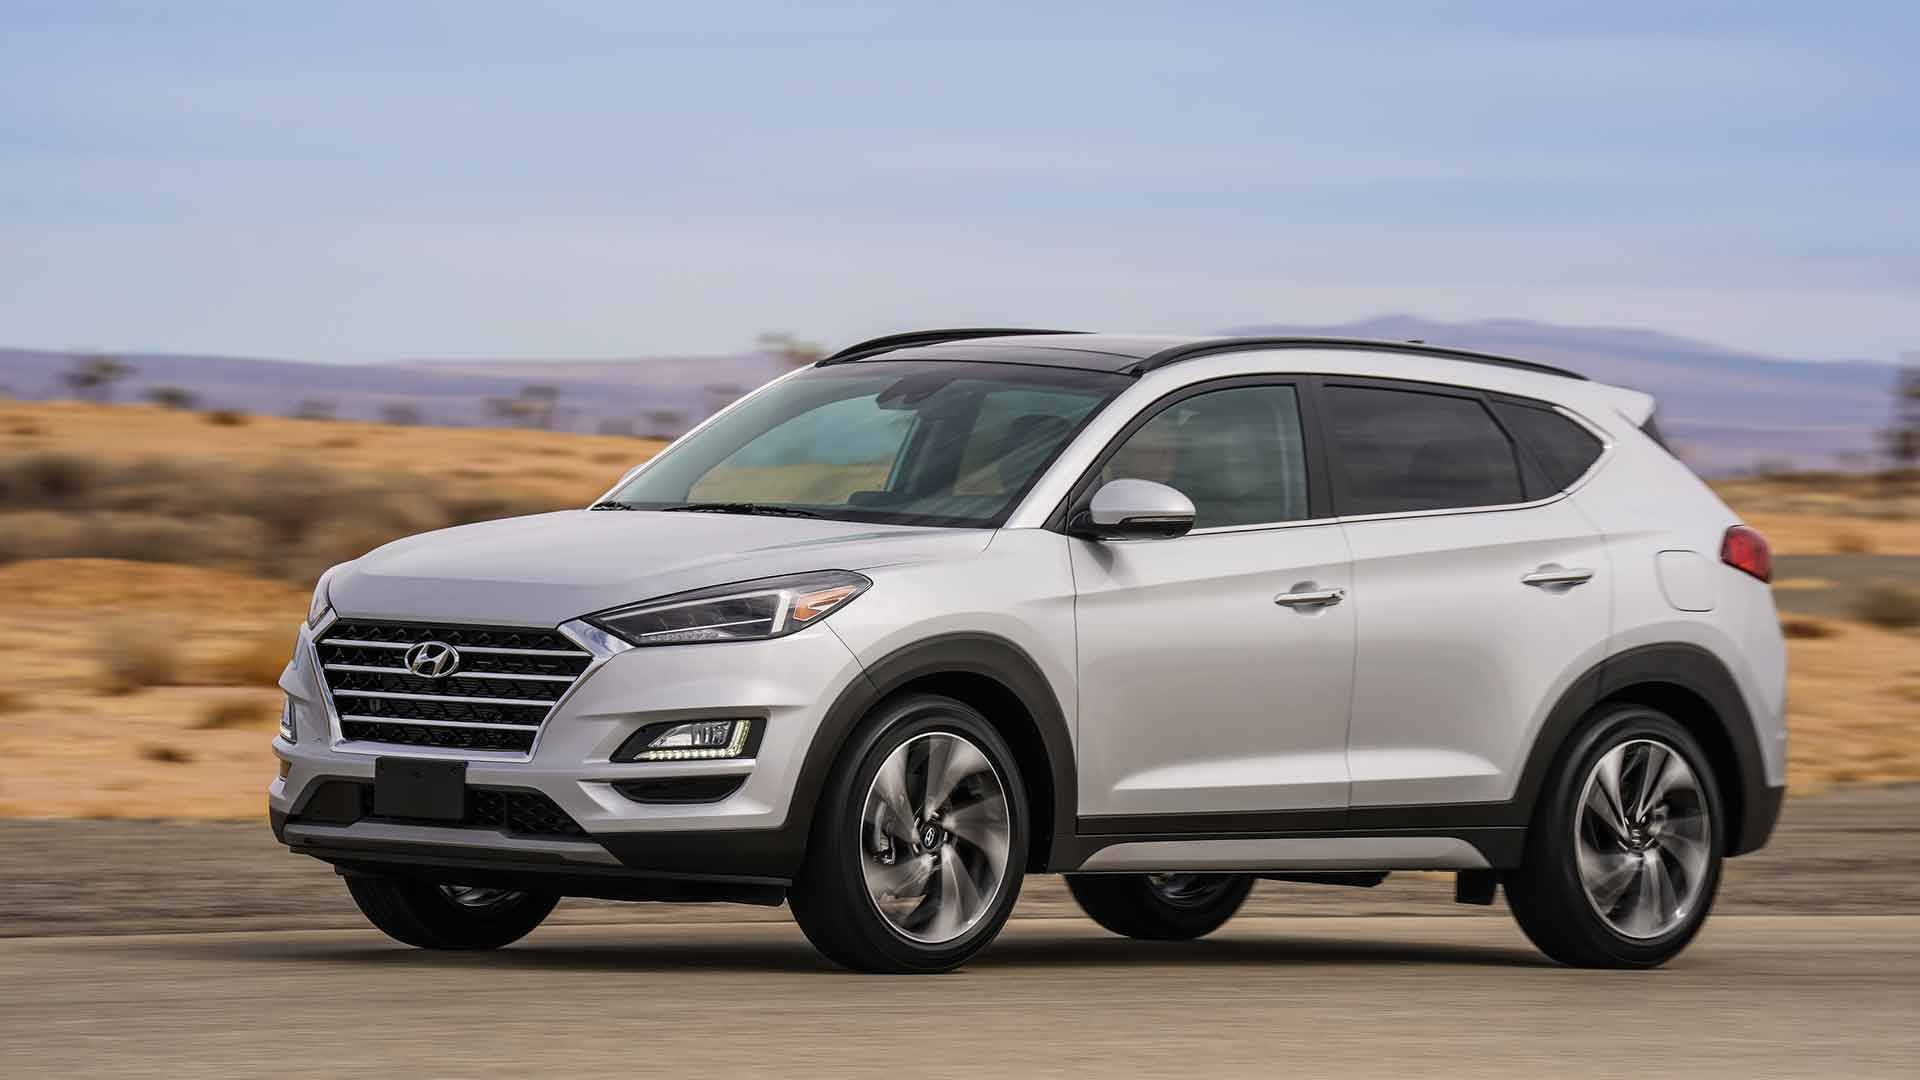 Car Dealerships In Tucson >> VWVortex.com - 2019 Hyundai Tucson Arrives With Major ...